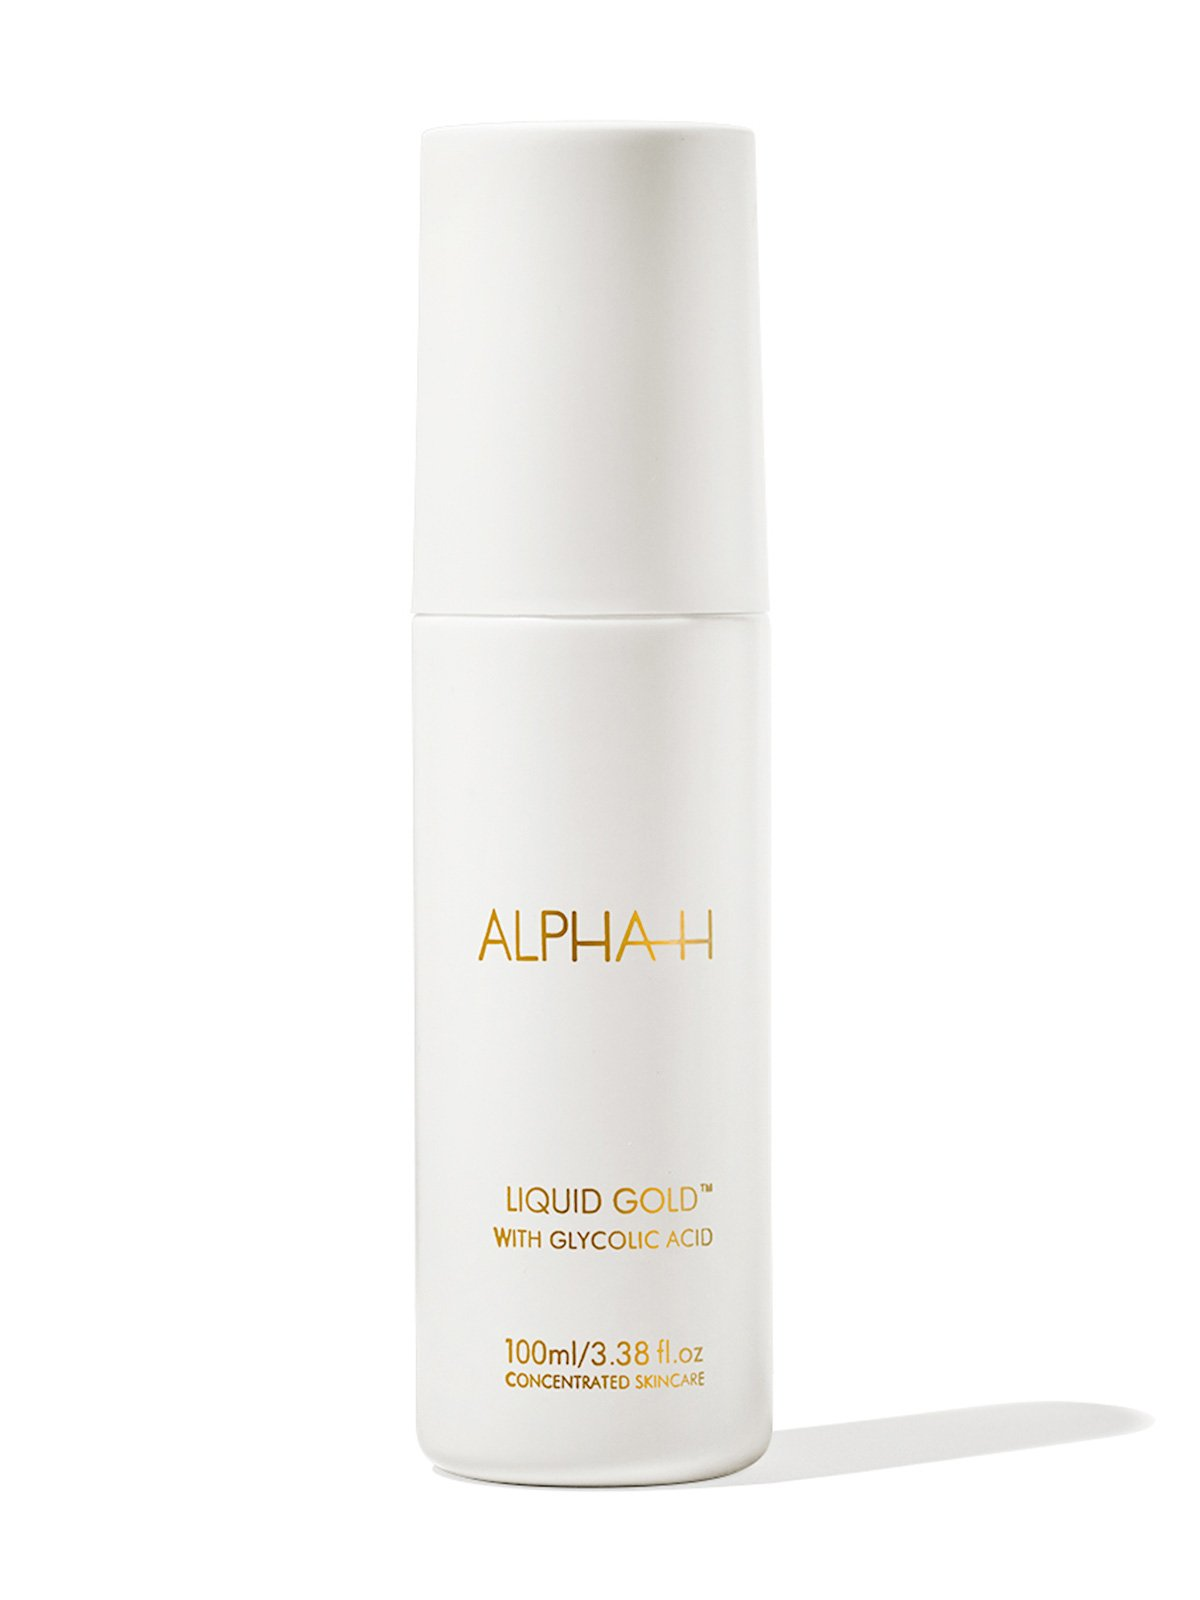 Liquid Gold with 5% Glycolic Acid